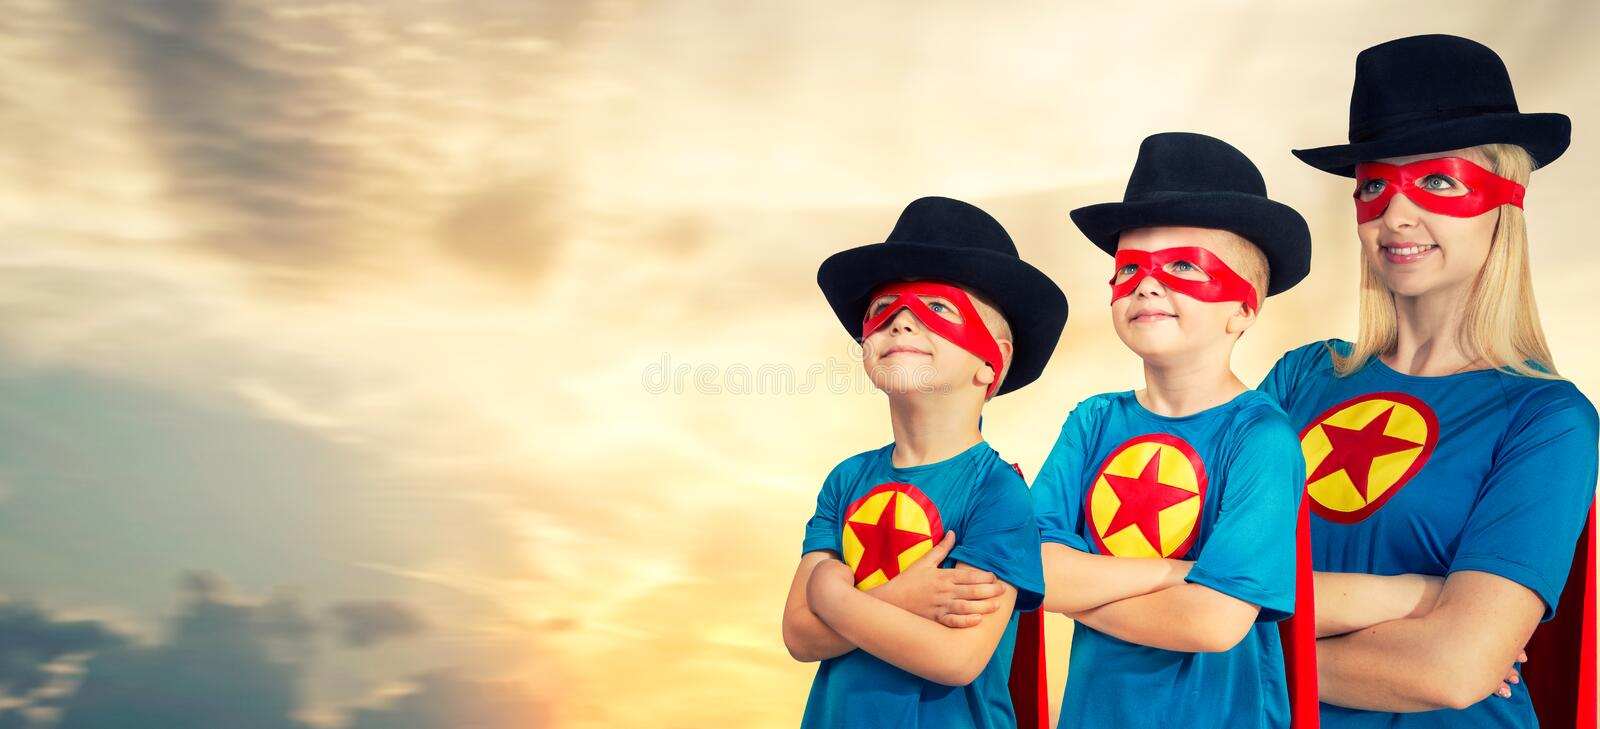 Mother and children in superheroes costumes. stock photos